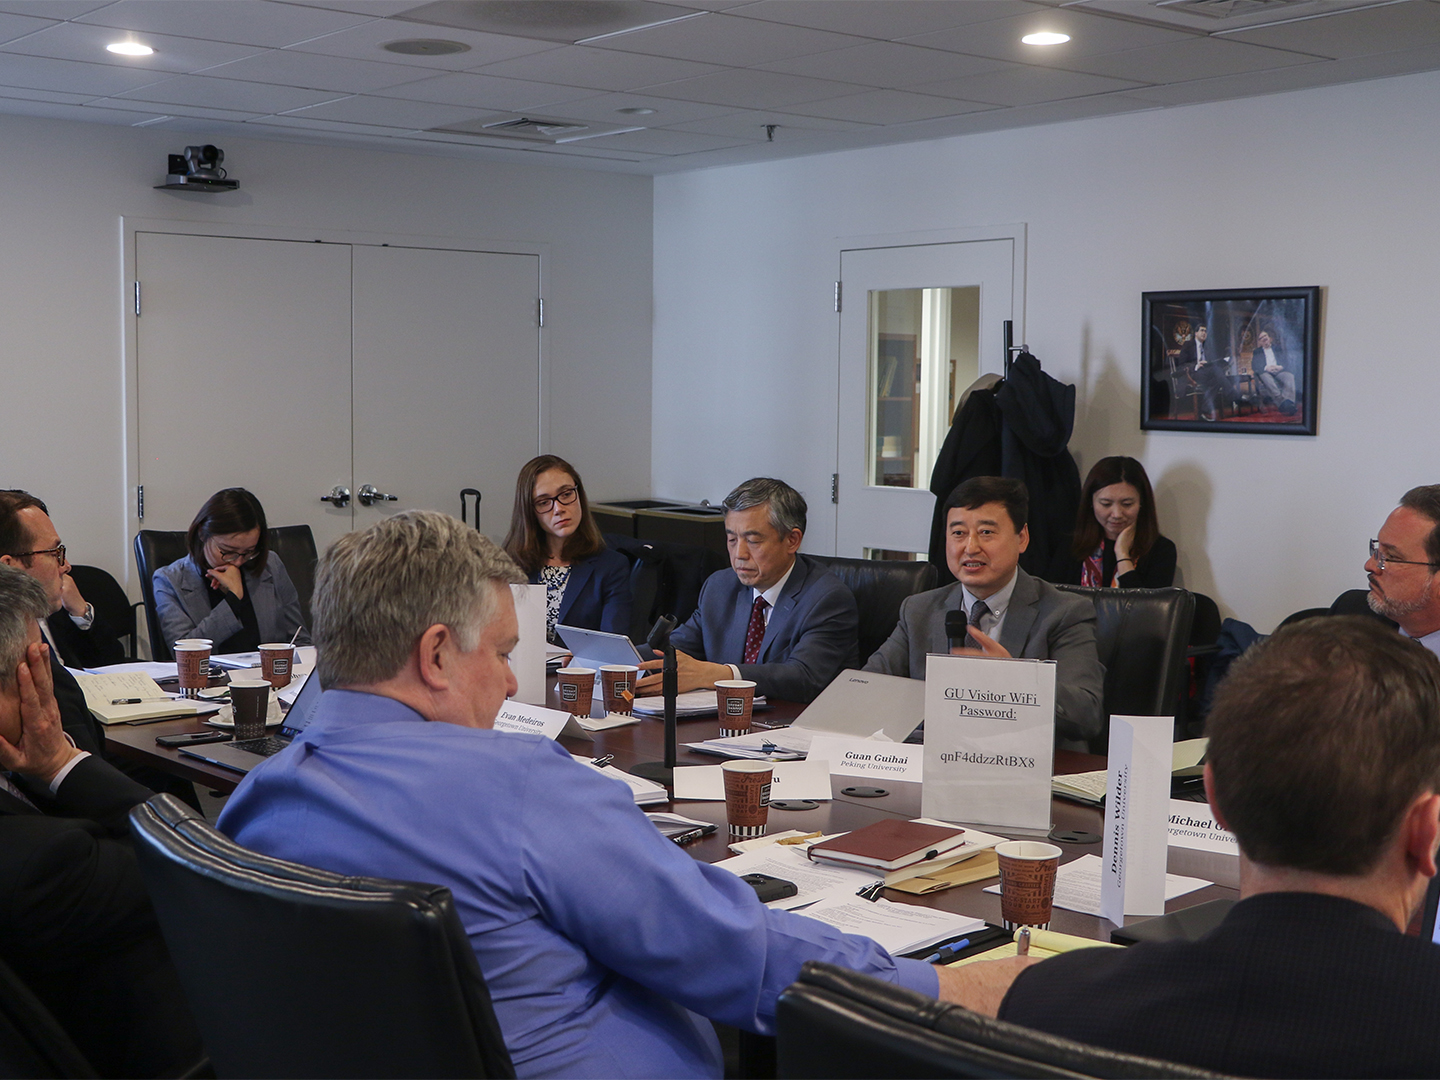 Professor Guan Guihai comments on the future of U.S.-China relations.